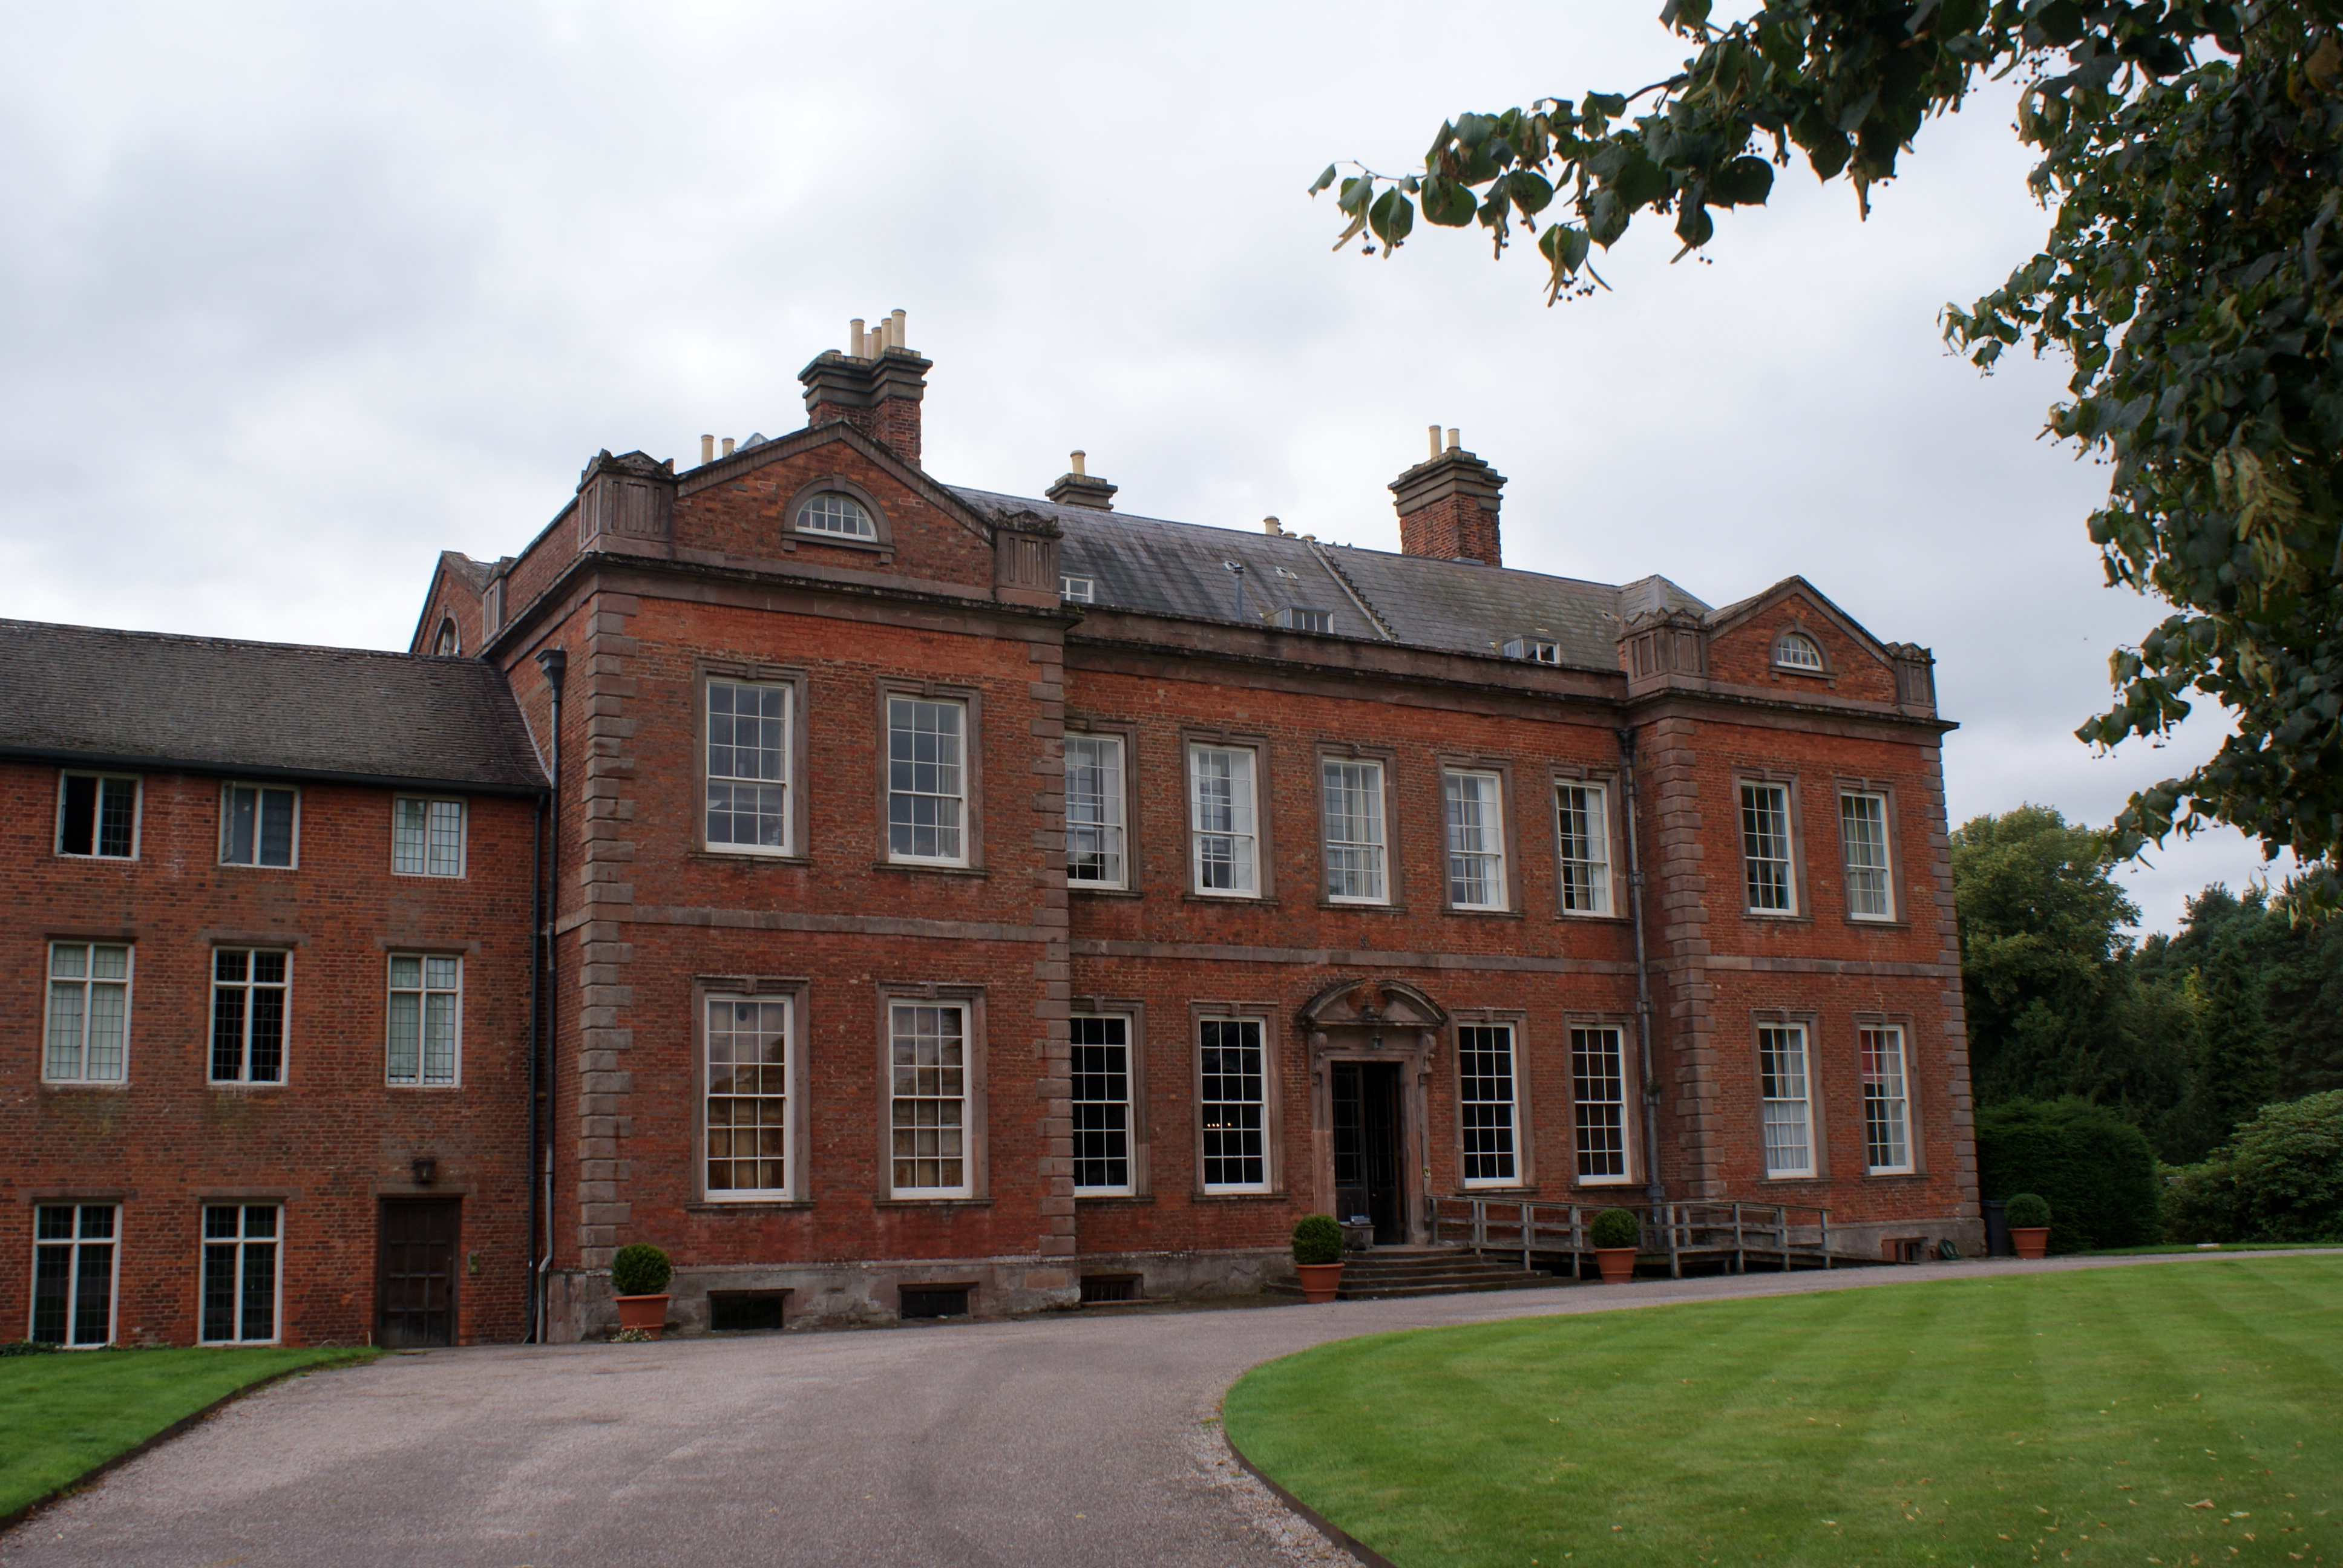 Dudmaston, a country house in Shropshire